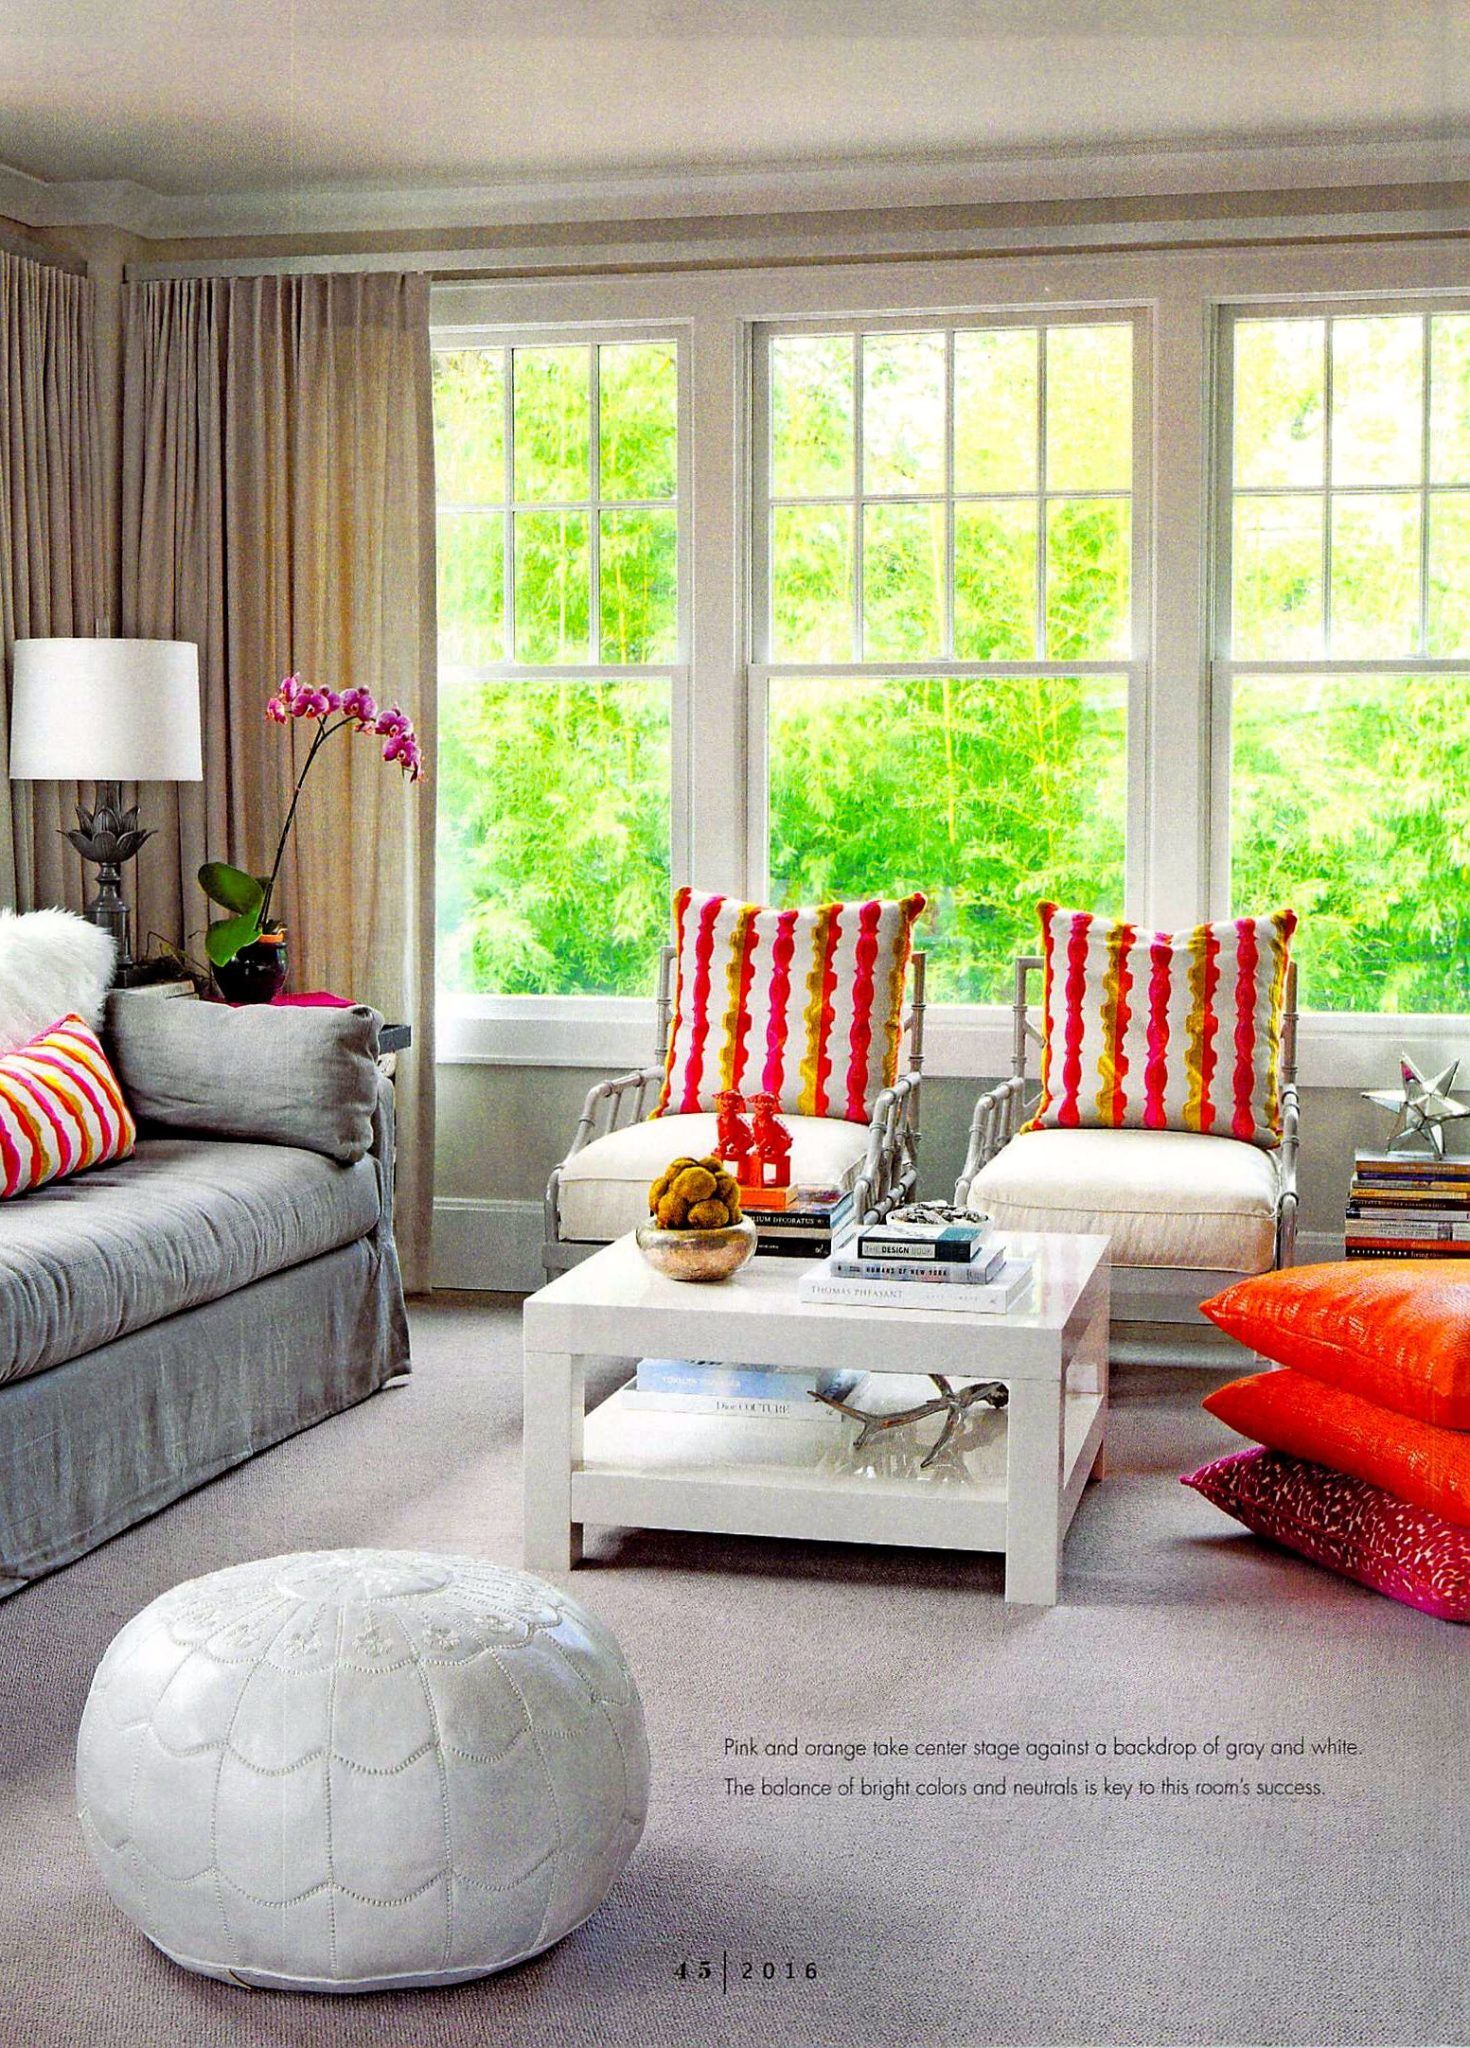 Living Room in Rooms Magazine feature from Delray Beach interior designer Olga Adler Interiors